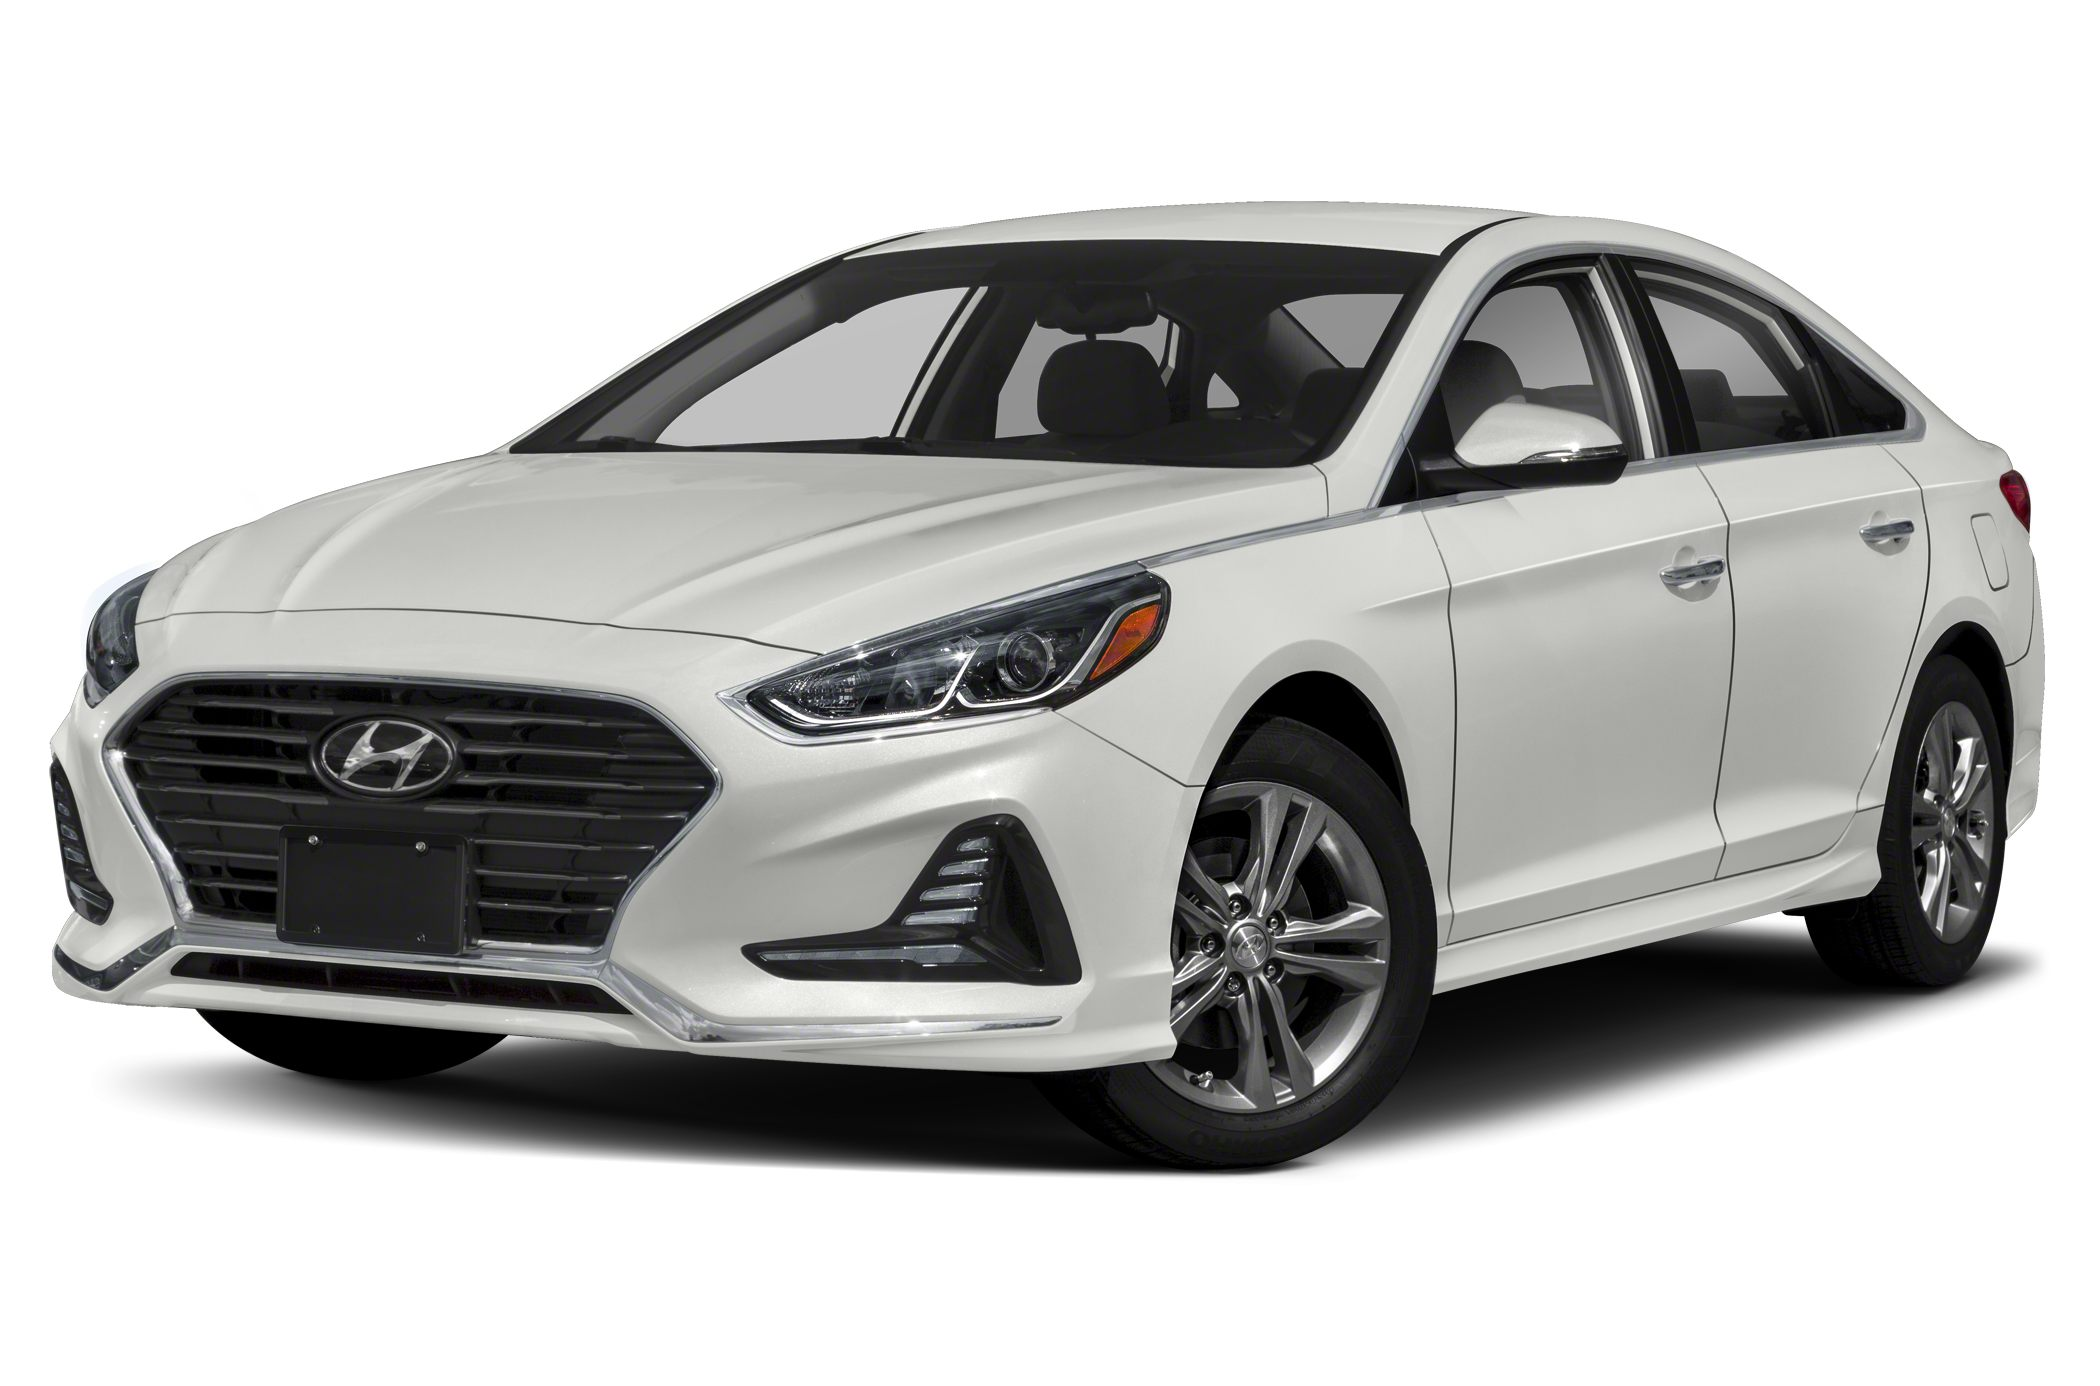 Hyundai Canada Incentives for the new 2019 Hyundai Sonata and Sonata Hybrid in Milton, Toronto, and the GTA